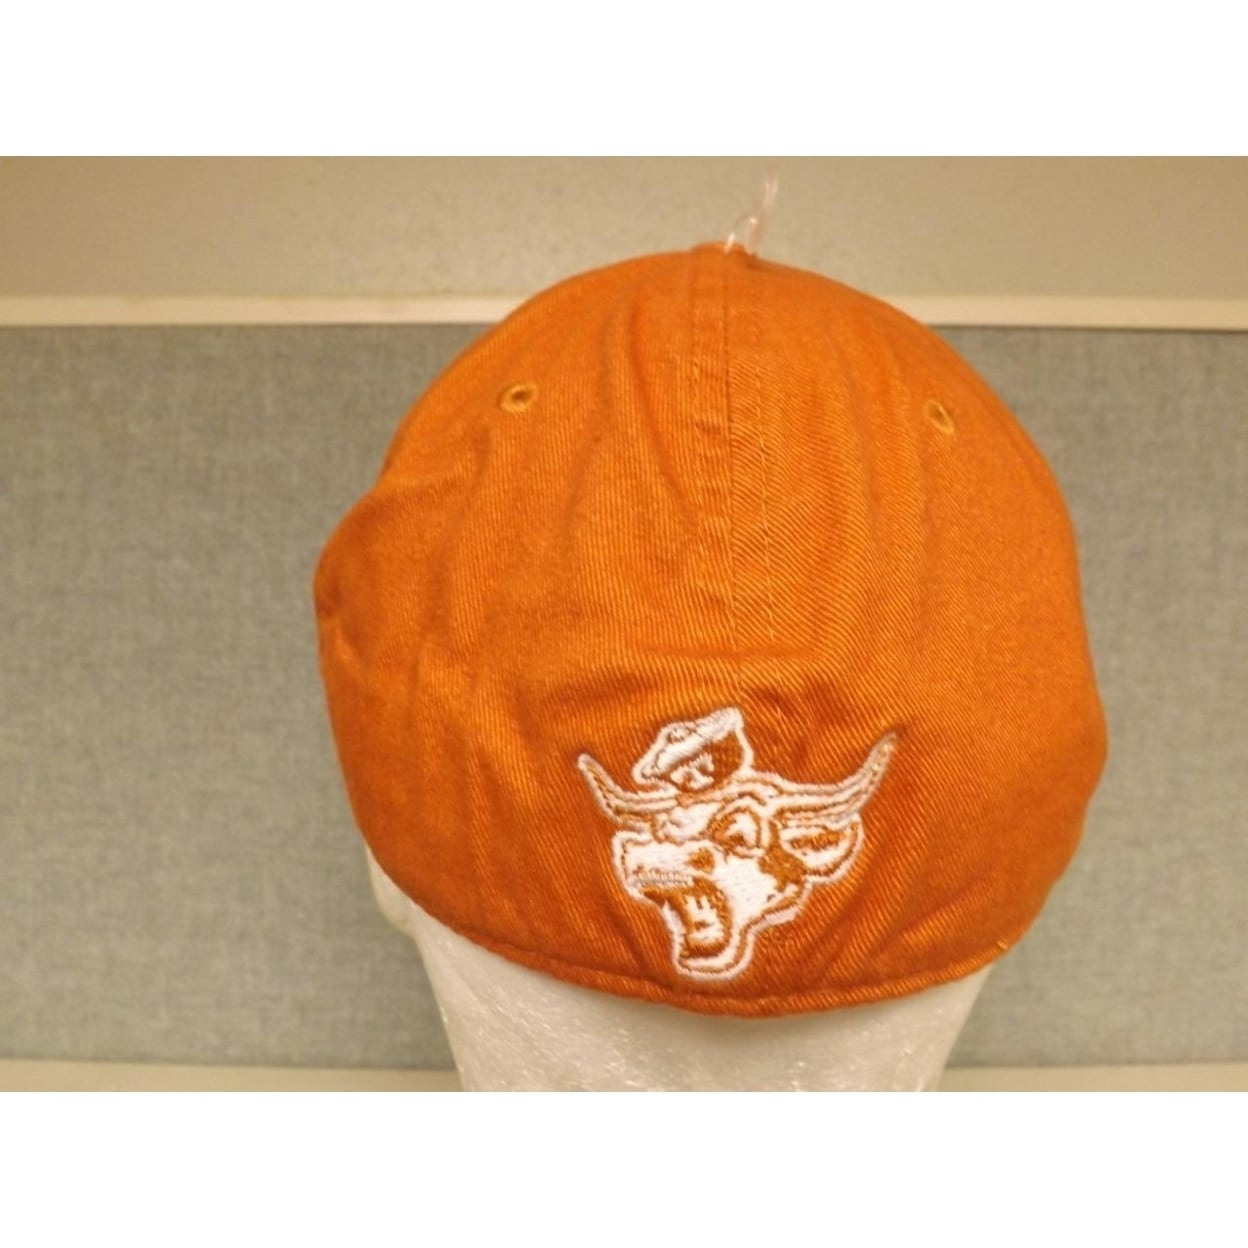 066253bc455 Shop Texas Longhorns Mens Adult Size OSFA Nike Cap Hat 22 - Free Shipping  On Orders Over  45 - Overstock - 23073005